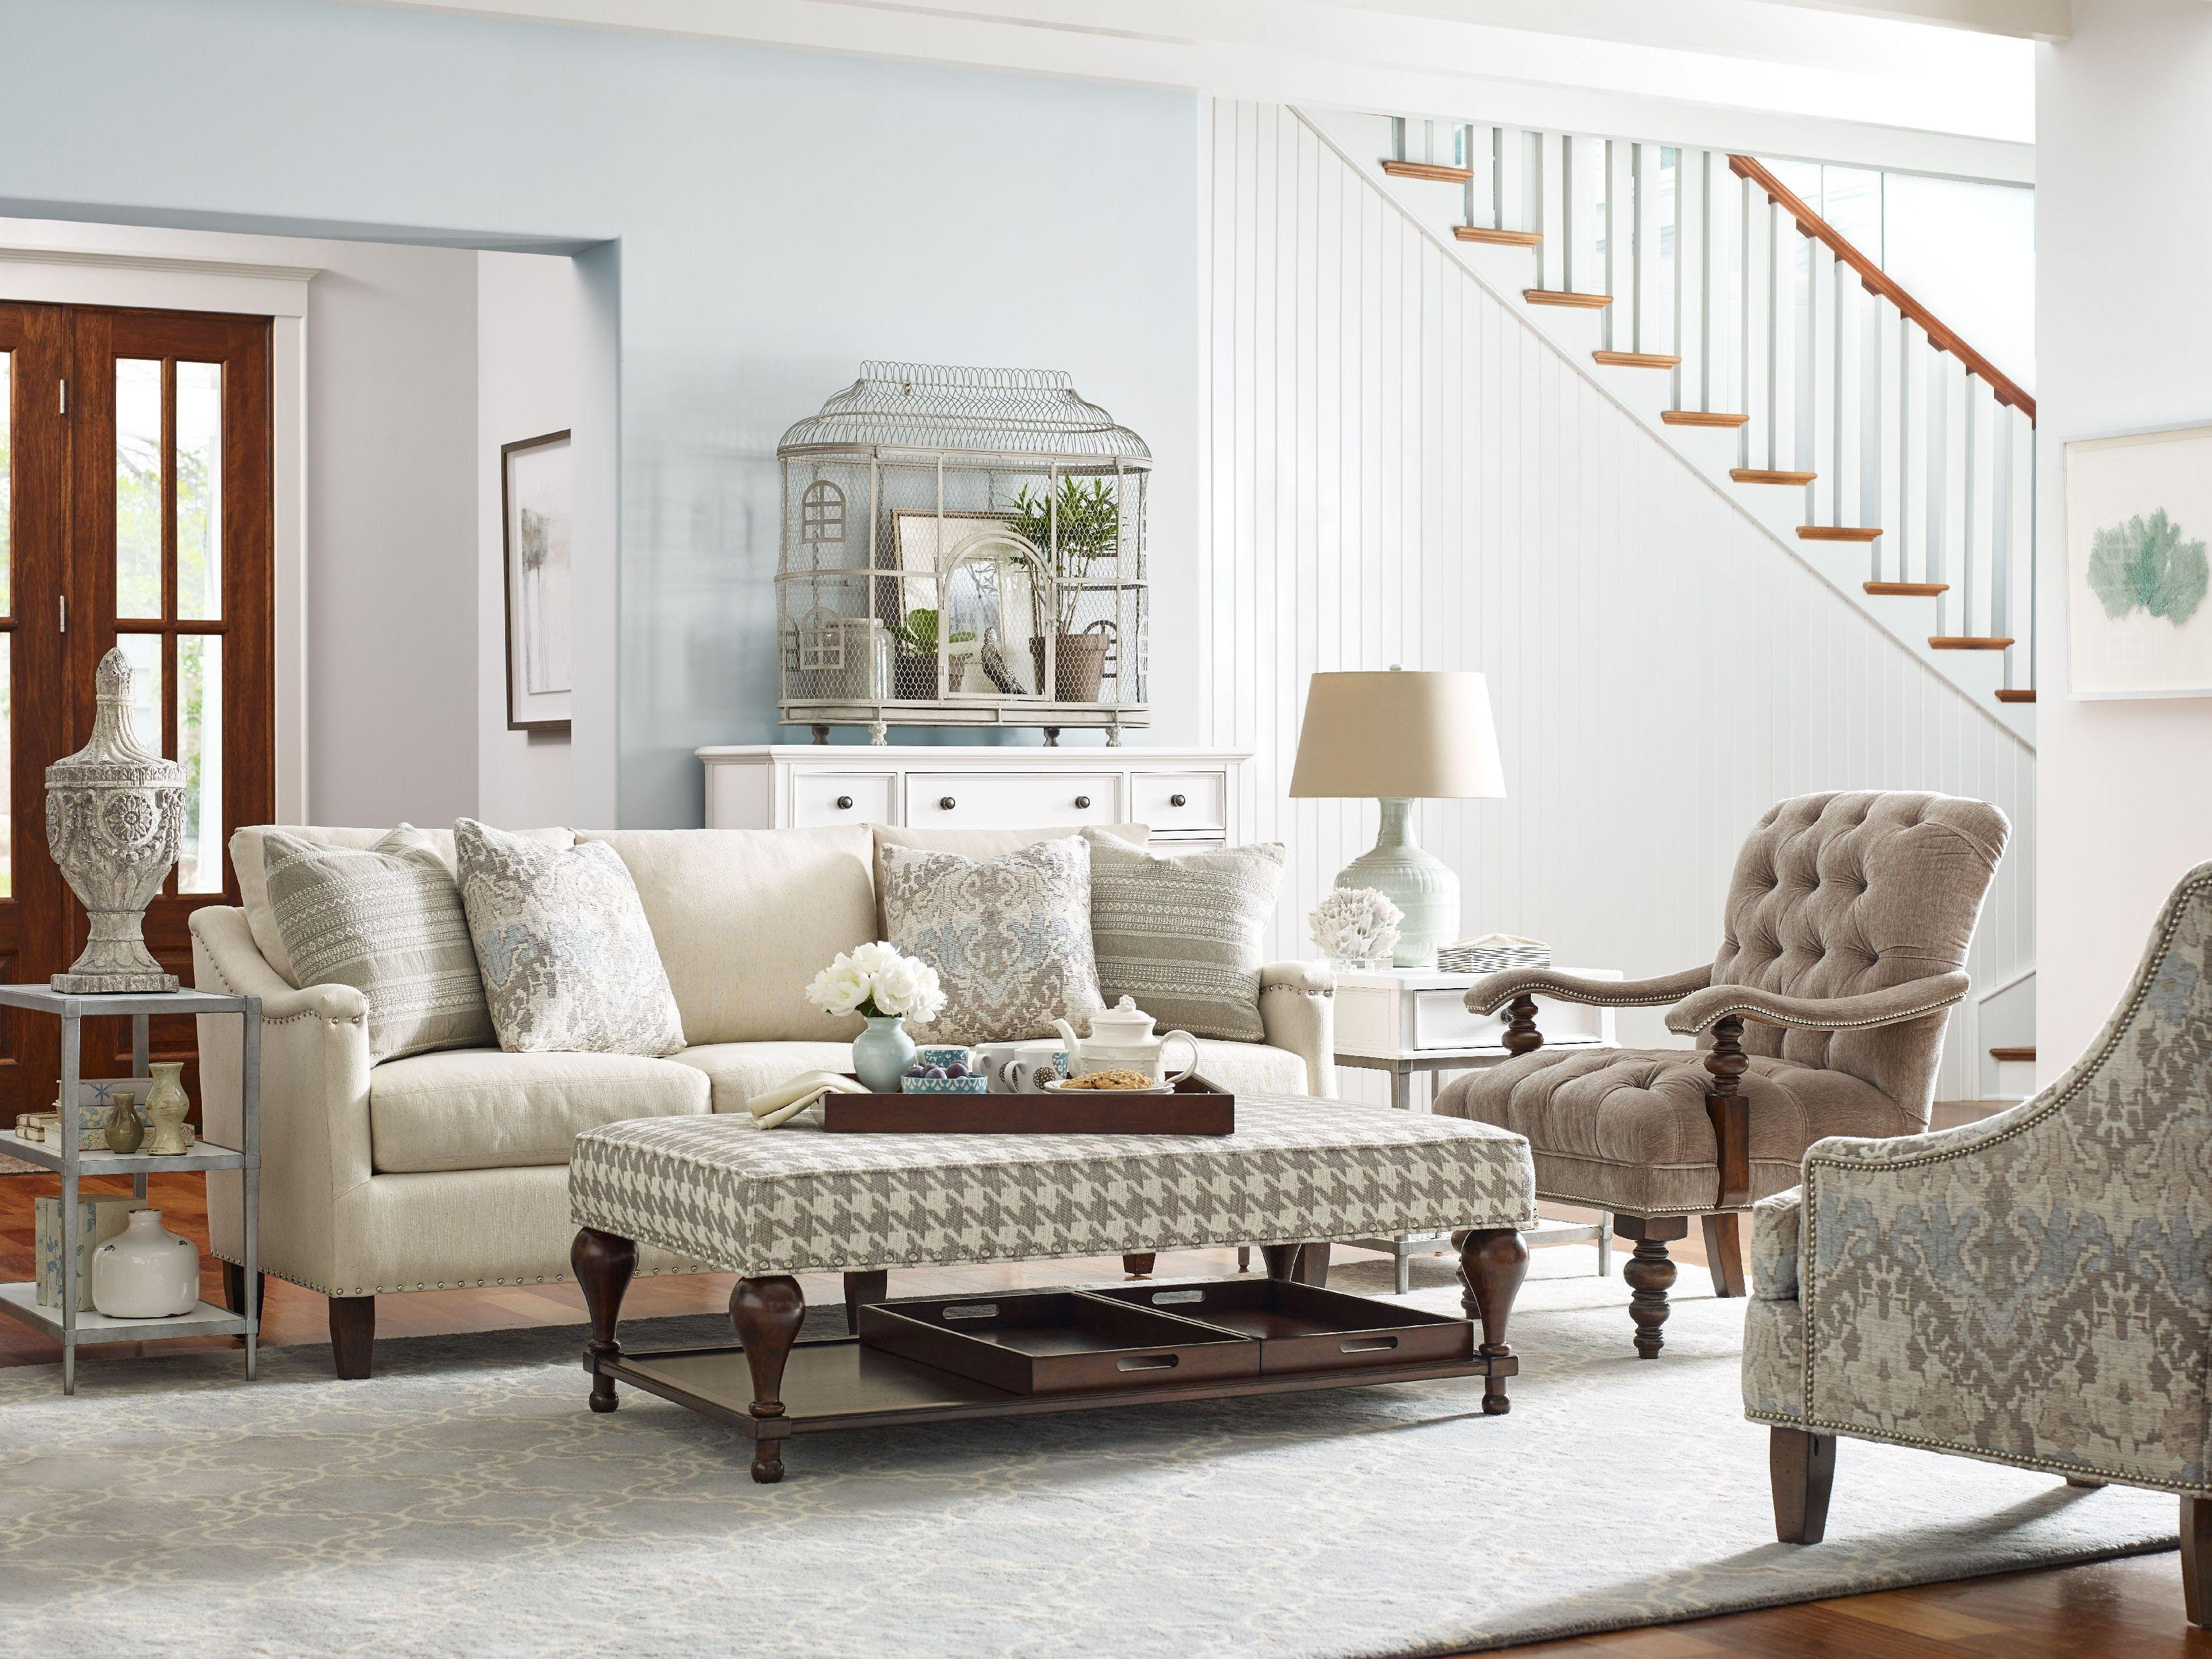 craftmaster sectional sofa reviews fabric beds brisbane 15 collection of ideas